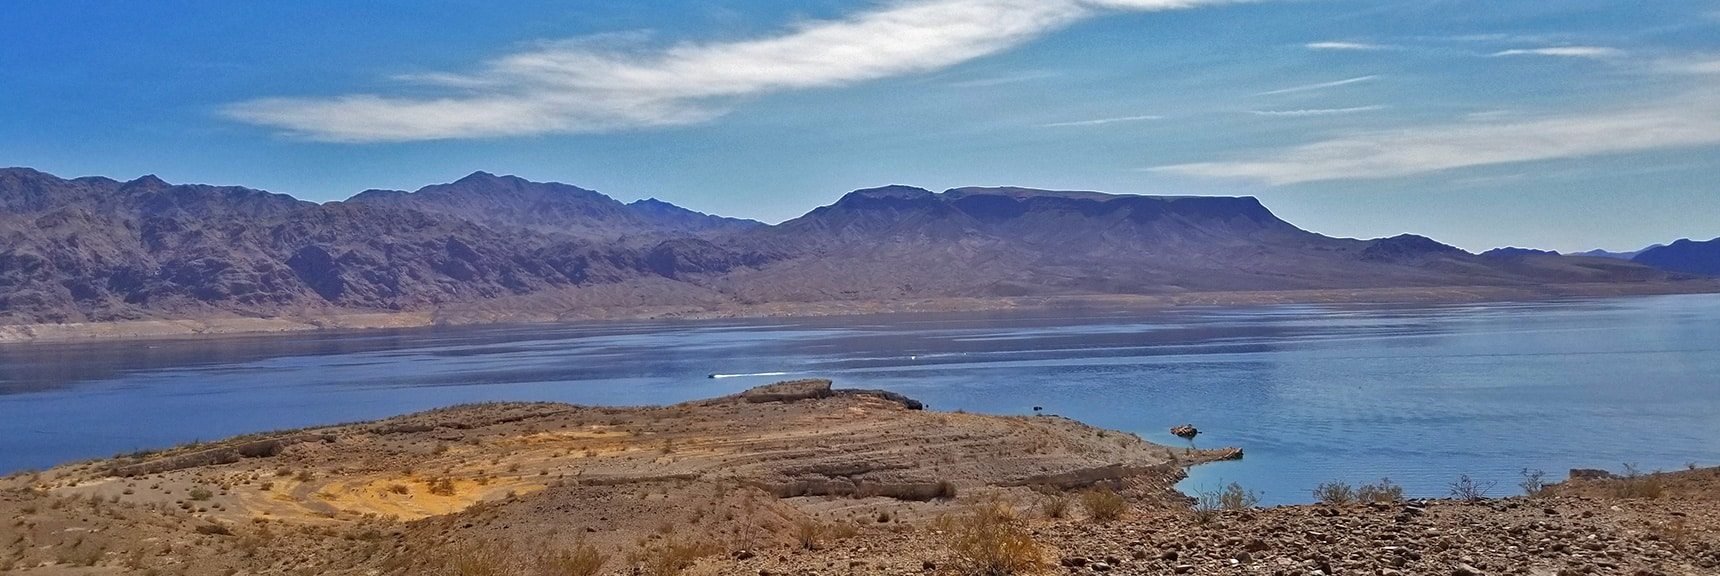 Black Mountains, Fortification Hill, Lake Mead   Callville Summit Trail   Lake Mead National Recreation Area, Nevada